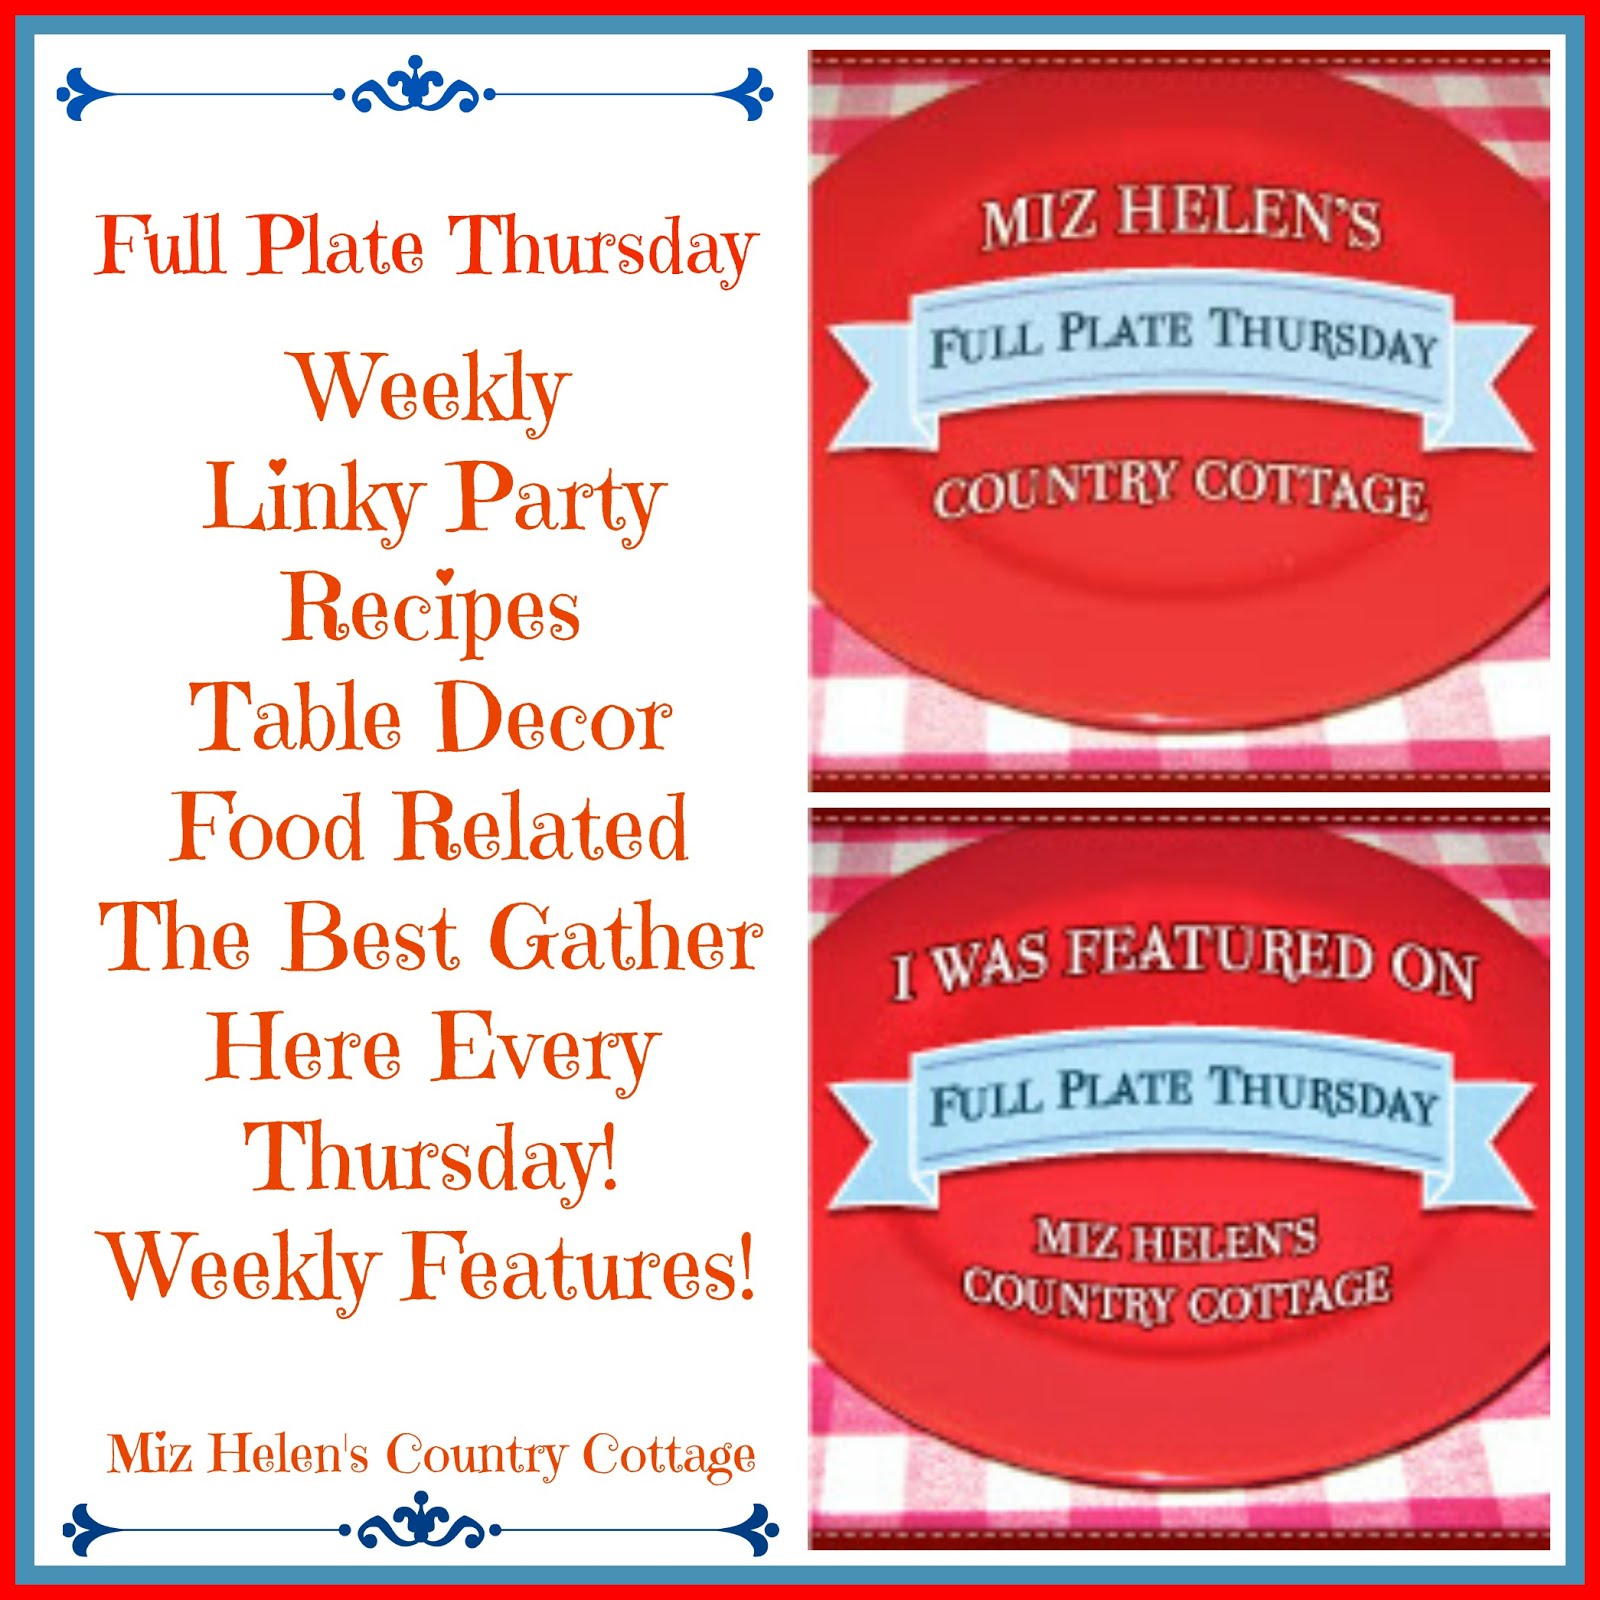 Full Plate Thursday,428 Current Party